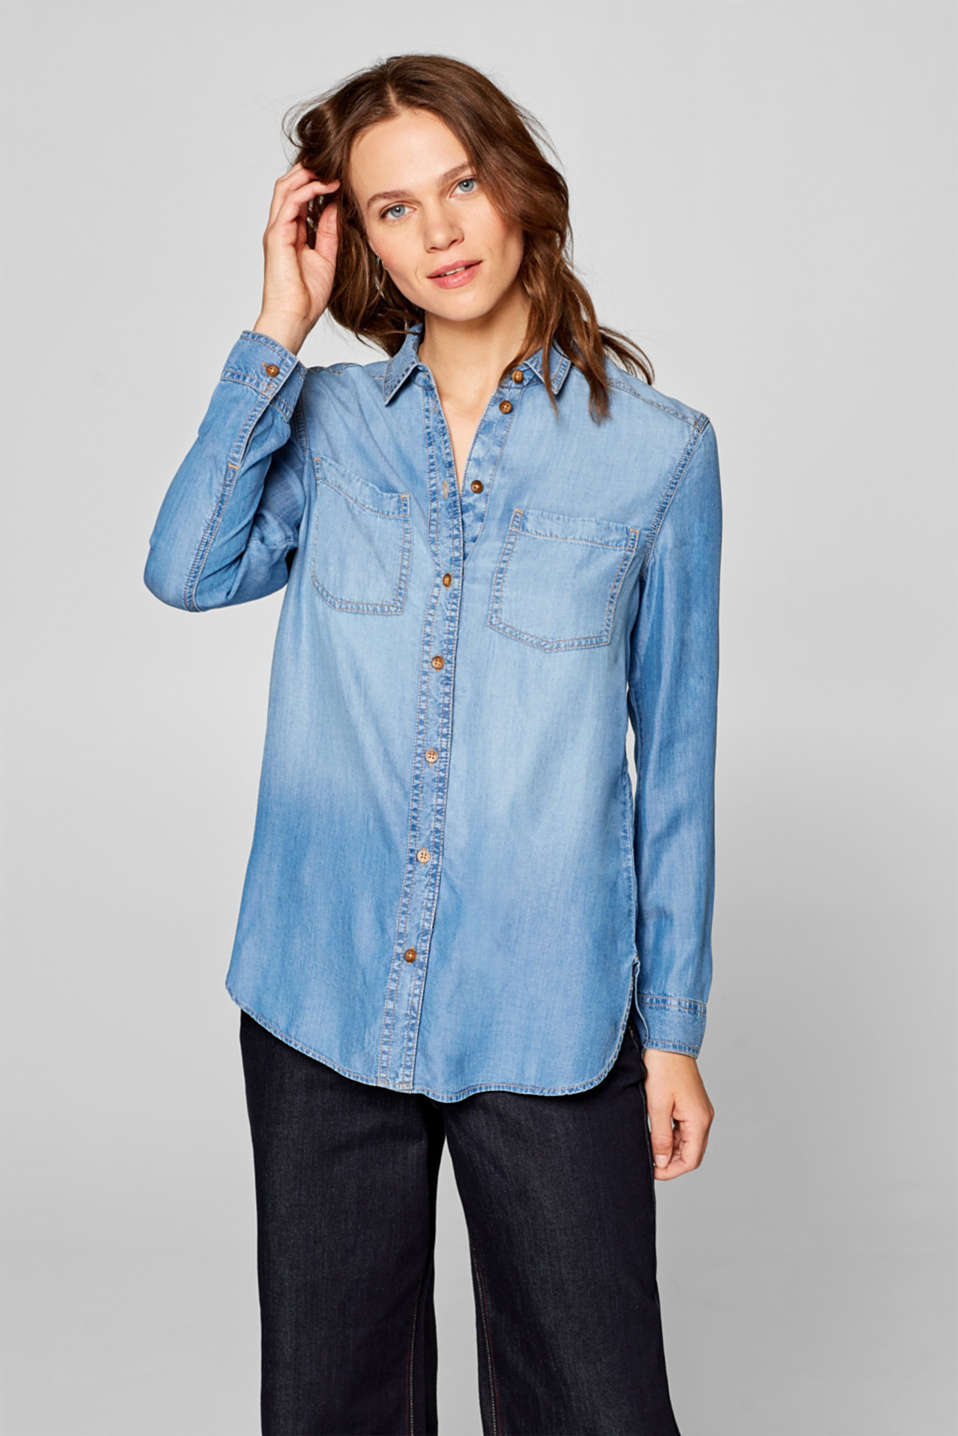 Esprit - Flowing denim blouse made of 100% lyocell